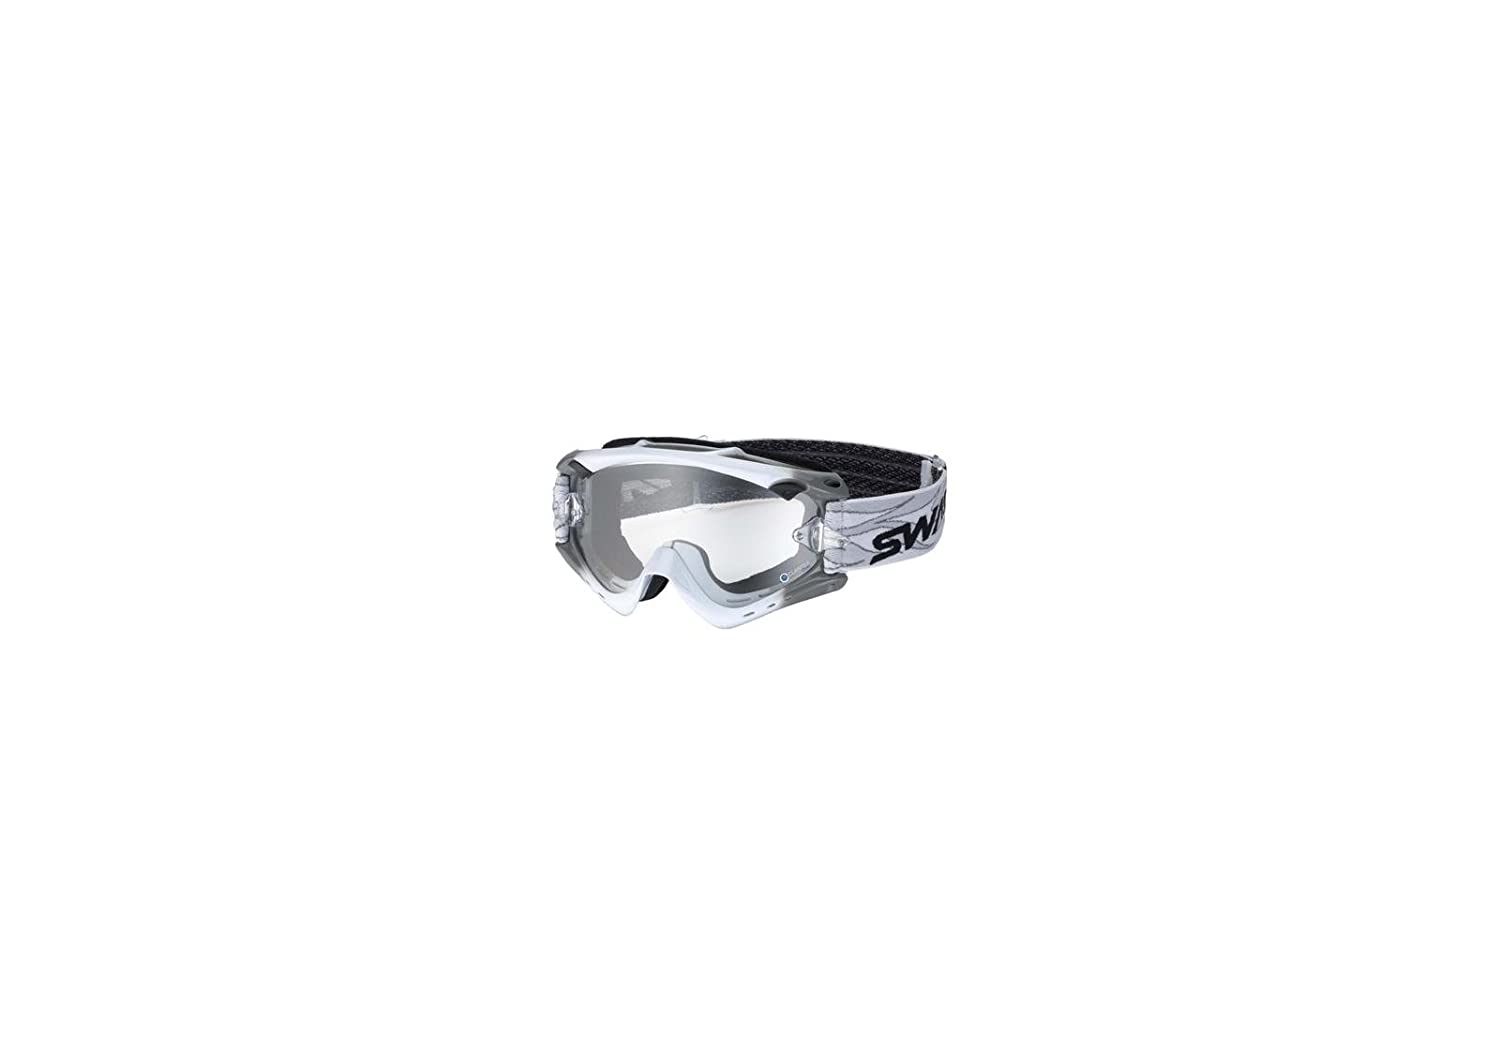 SWANS Yamamoto Optics Dirt Goggles RUSH-Advance White / Grey Clear (HC) the four swans